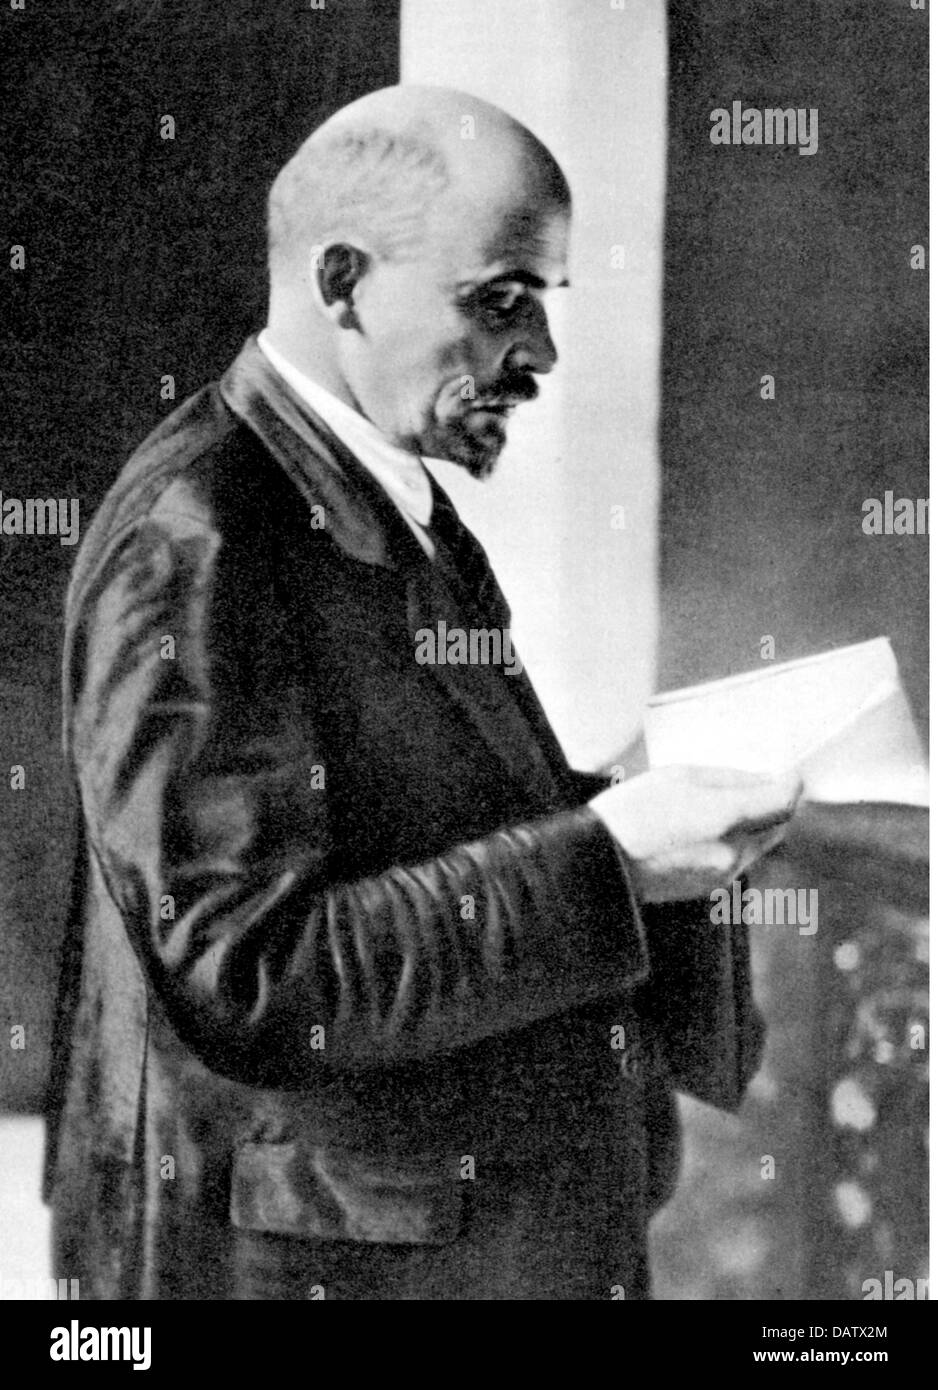 Lenin (Vladimir Ilyich Ulyanov), 22.4.1870 - 21.1.1924, Russian politician, half length, during of the 2nd congress - Stock Image